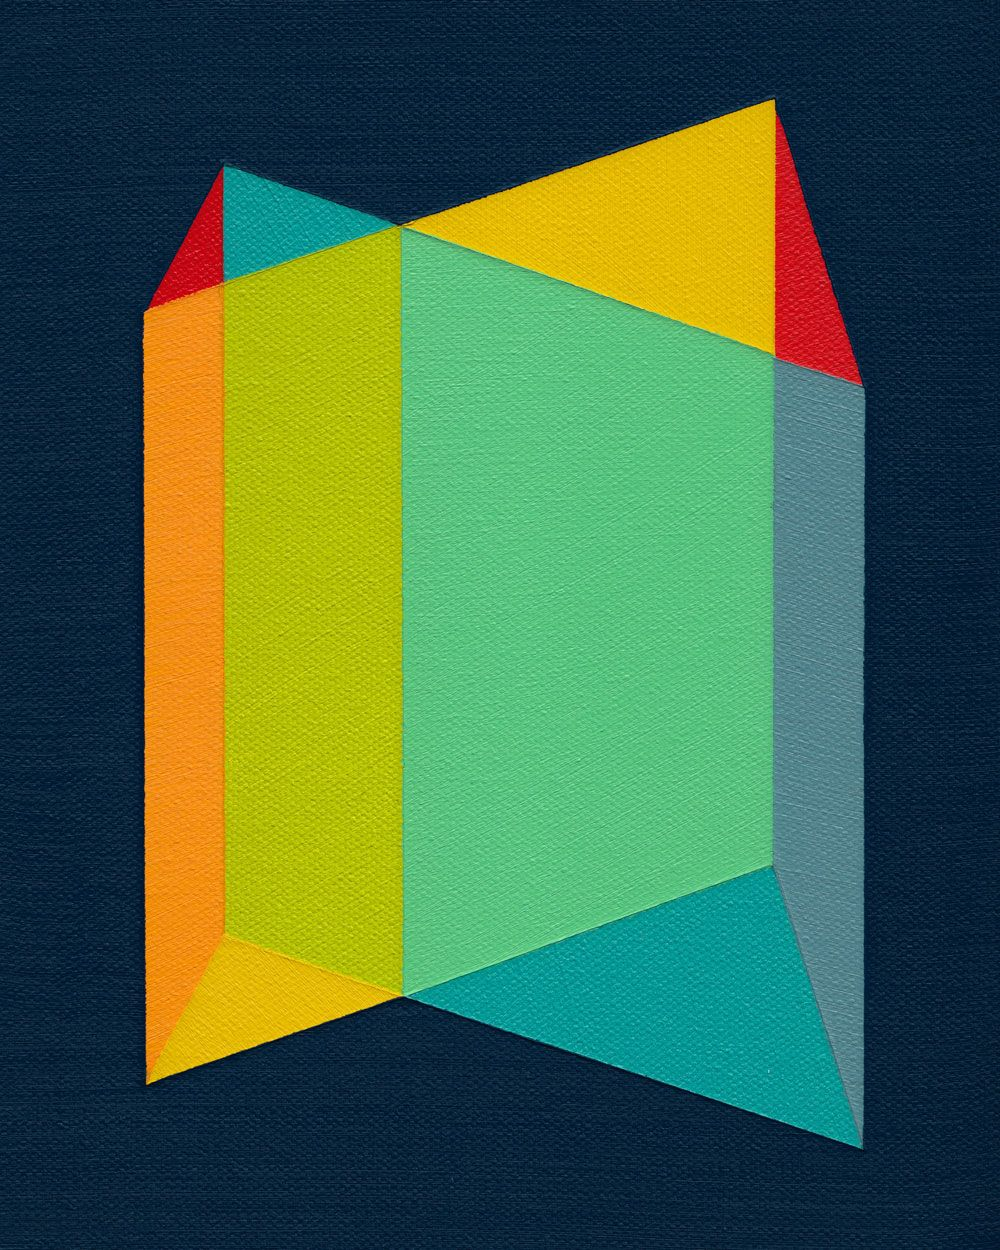 Abstract geometric art hd images 3 hd wallpapers art for Geometric paint designs